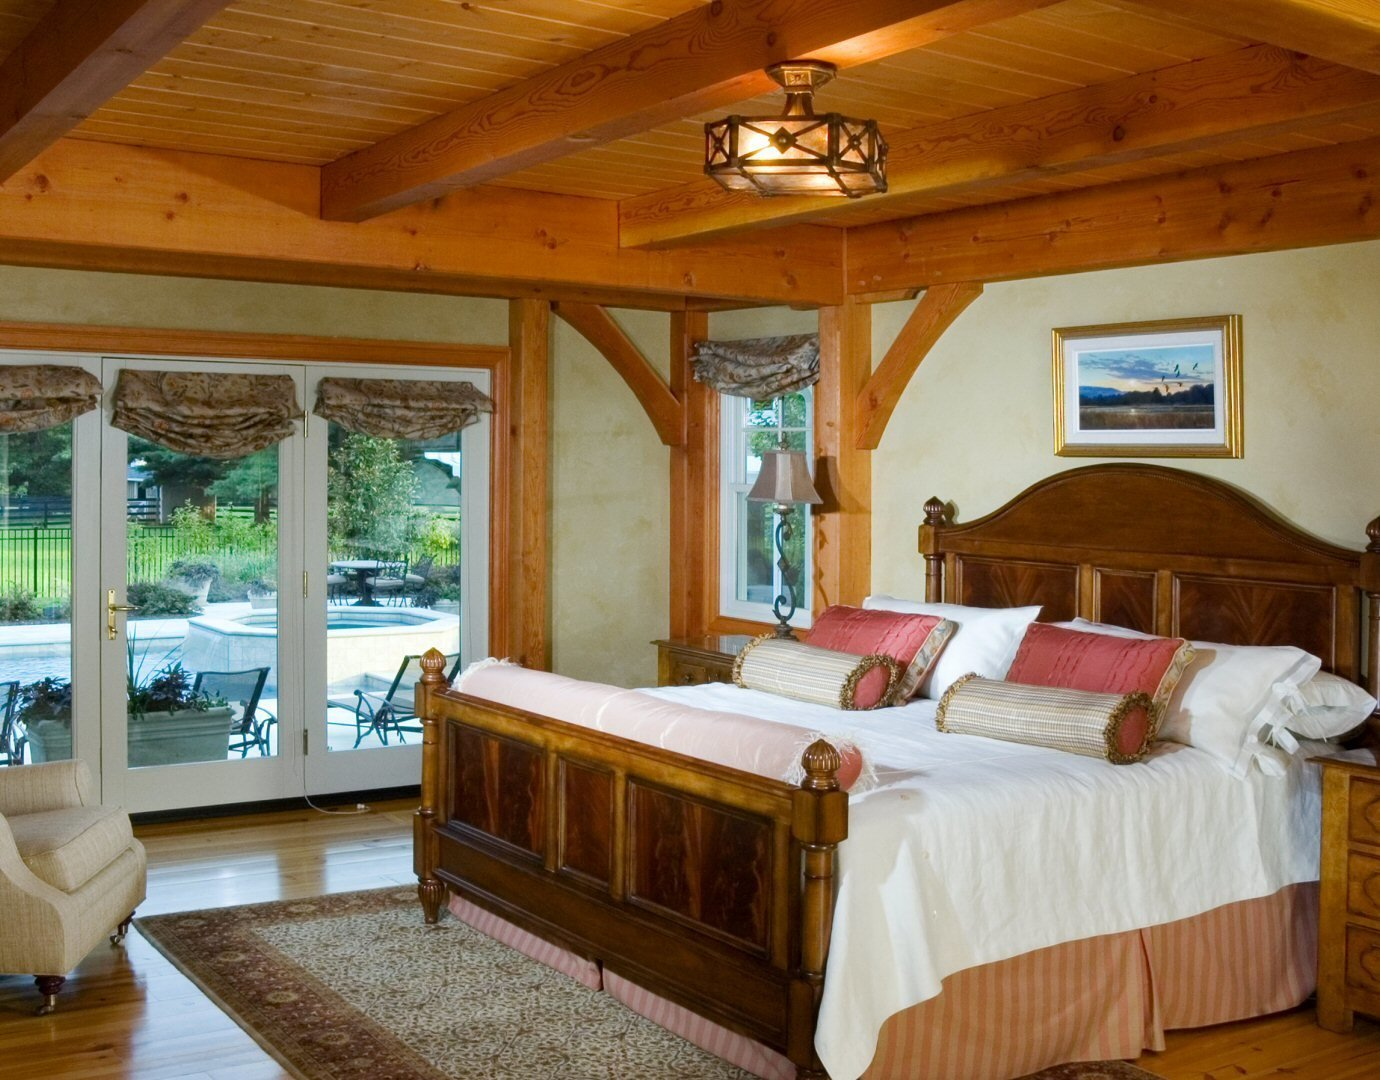 The Timber Framed Master Bedroom has Direct Pool Access  Yellow Brook Farm House by Timberpeg